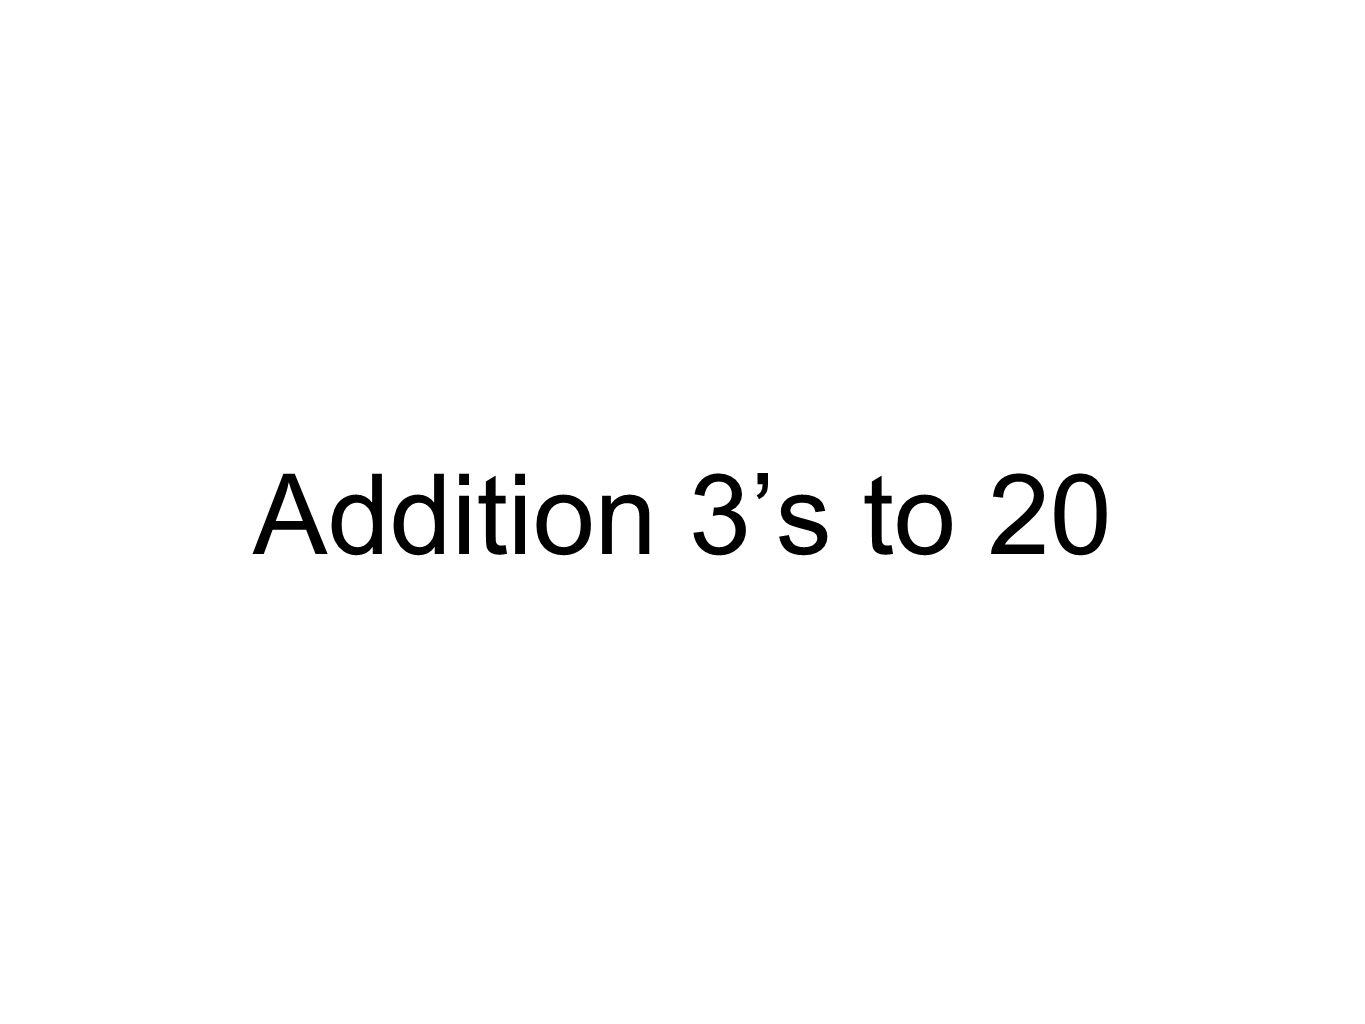 Addition 3's to 20